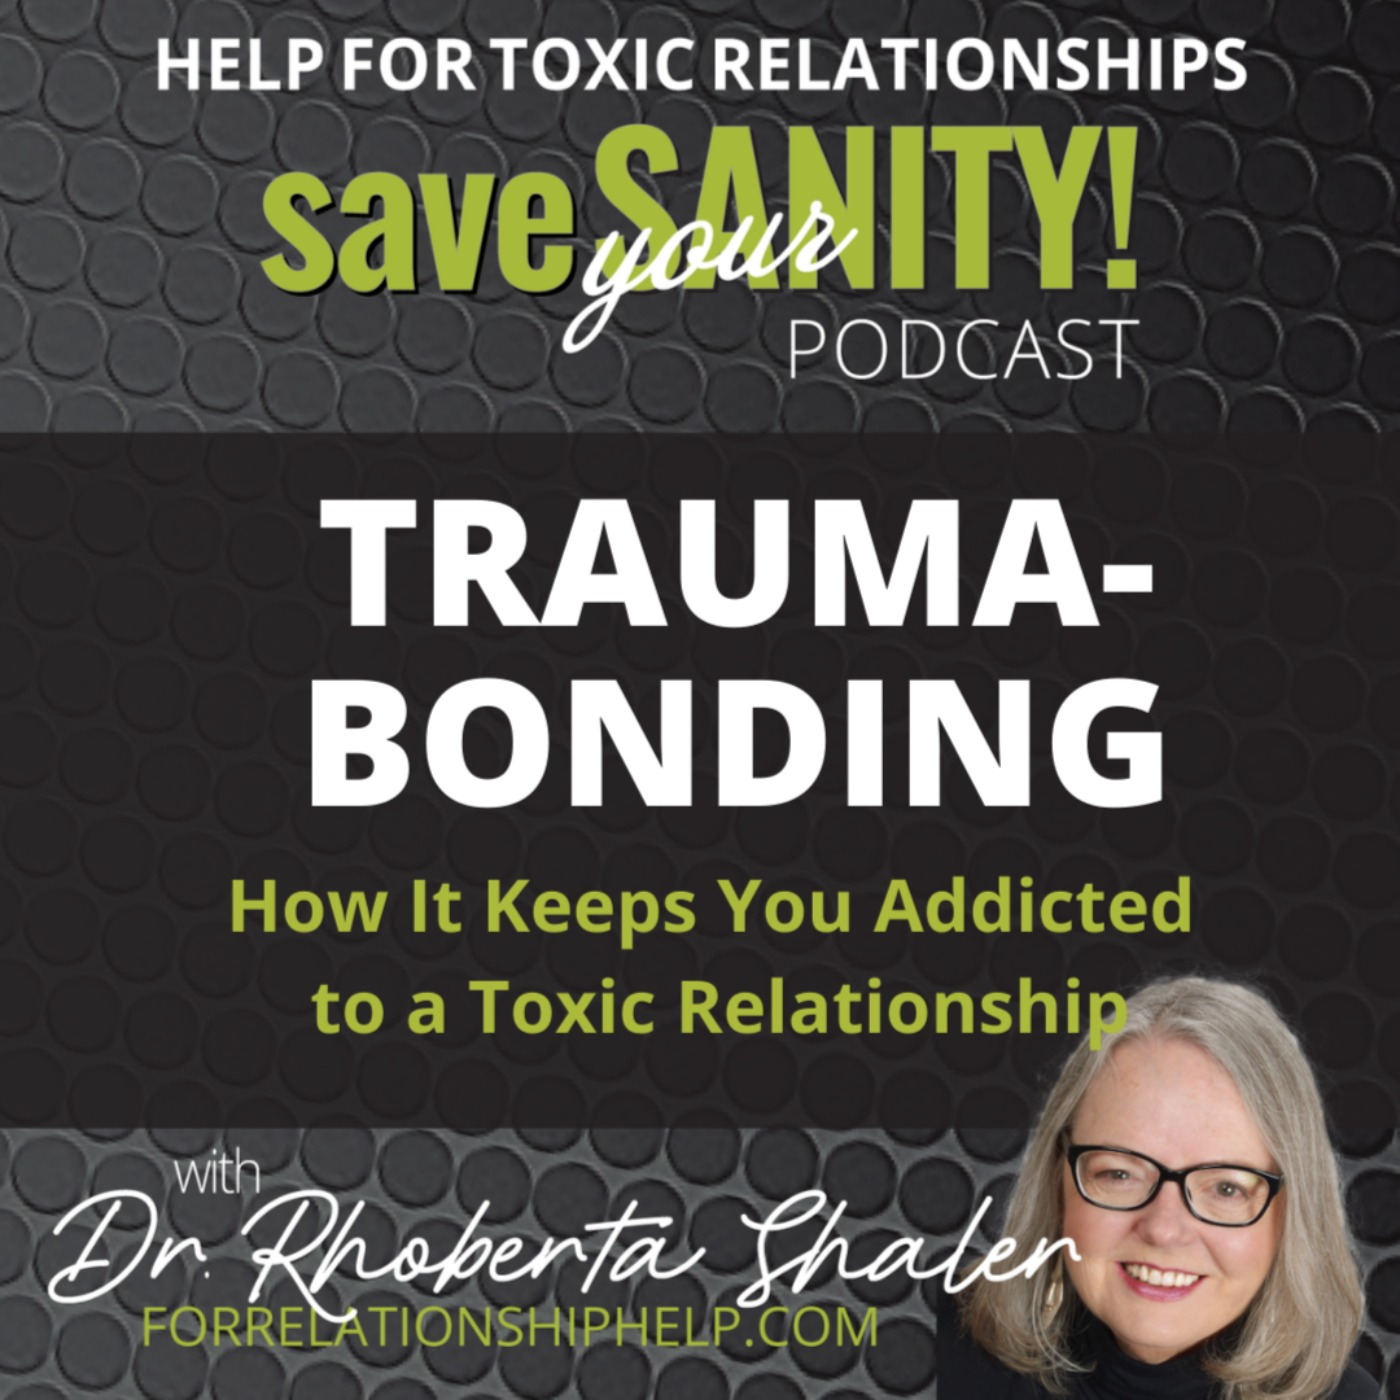 How the Strong Pull of Trauma-Bonding Creates Addiction to a Toxic Relationship